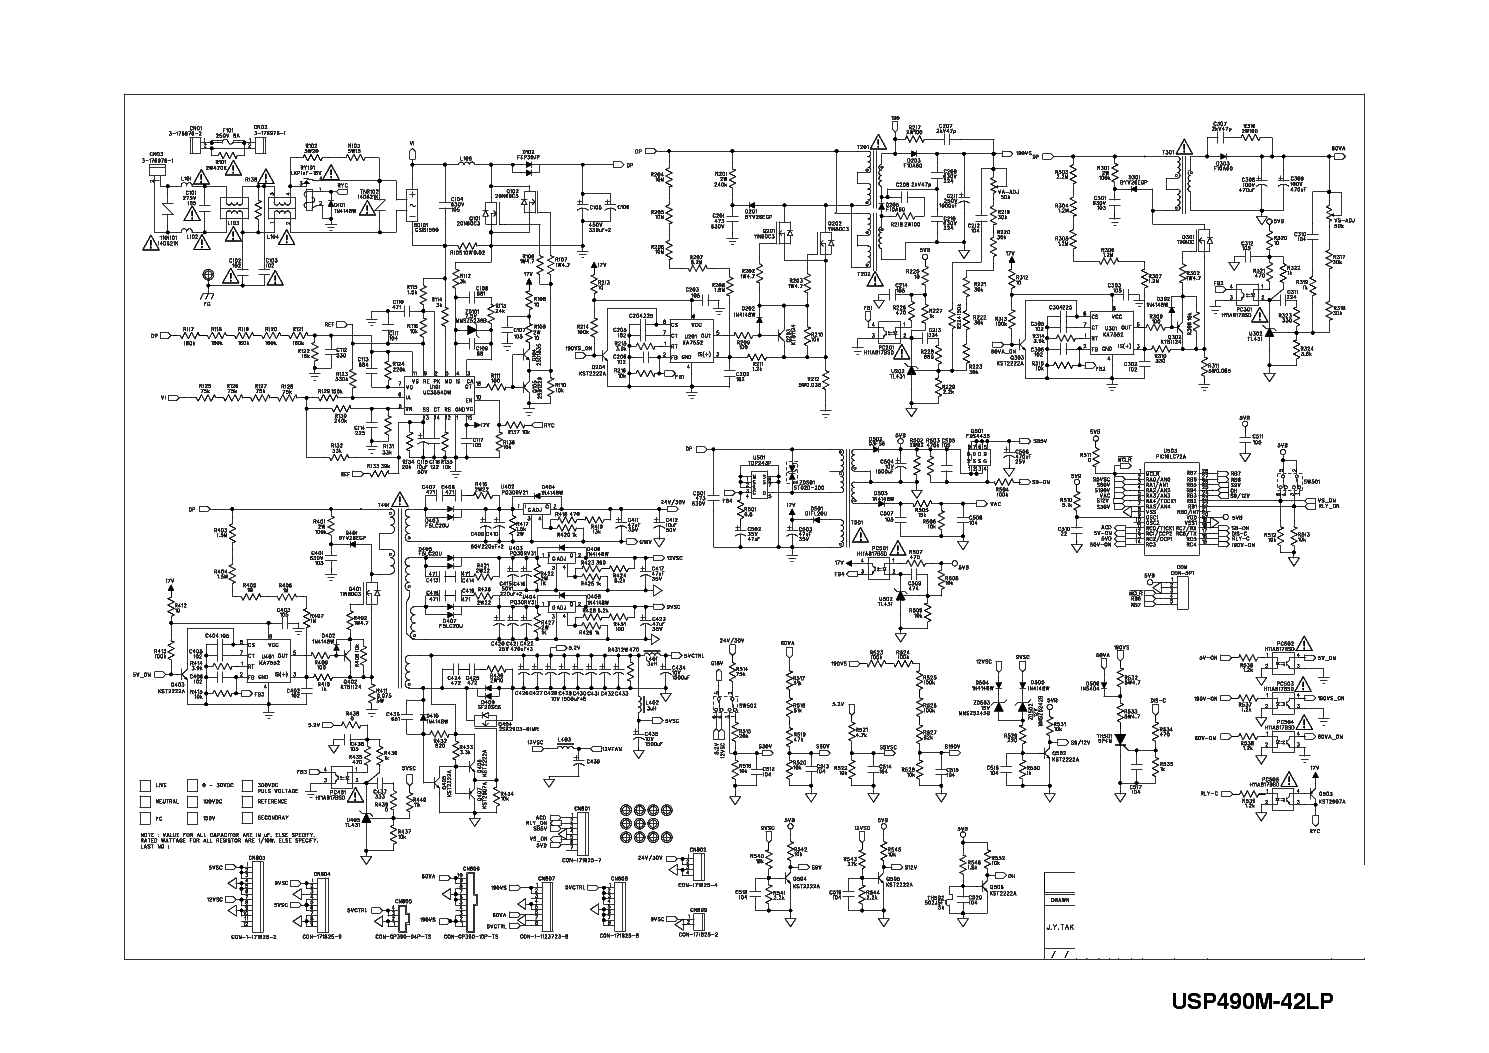 lg tv circuit diagram including power supply schematic diagram tv power supply schematic diagram likewise samsung led tv power supply [ 1489 x 1053 Pixel ]